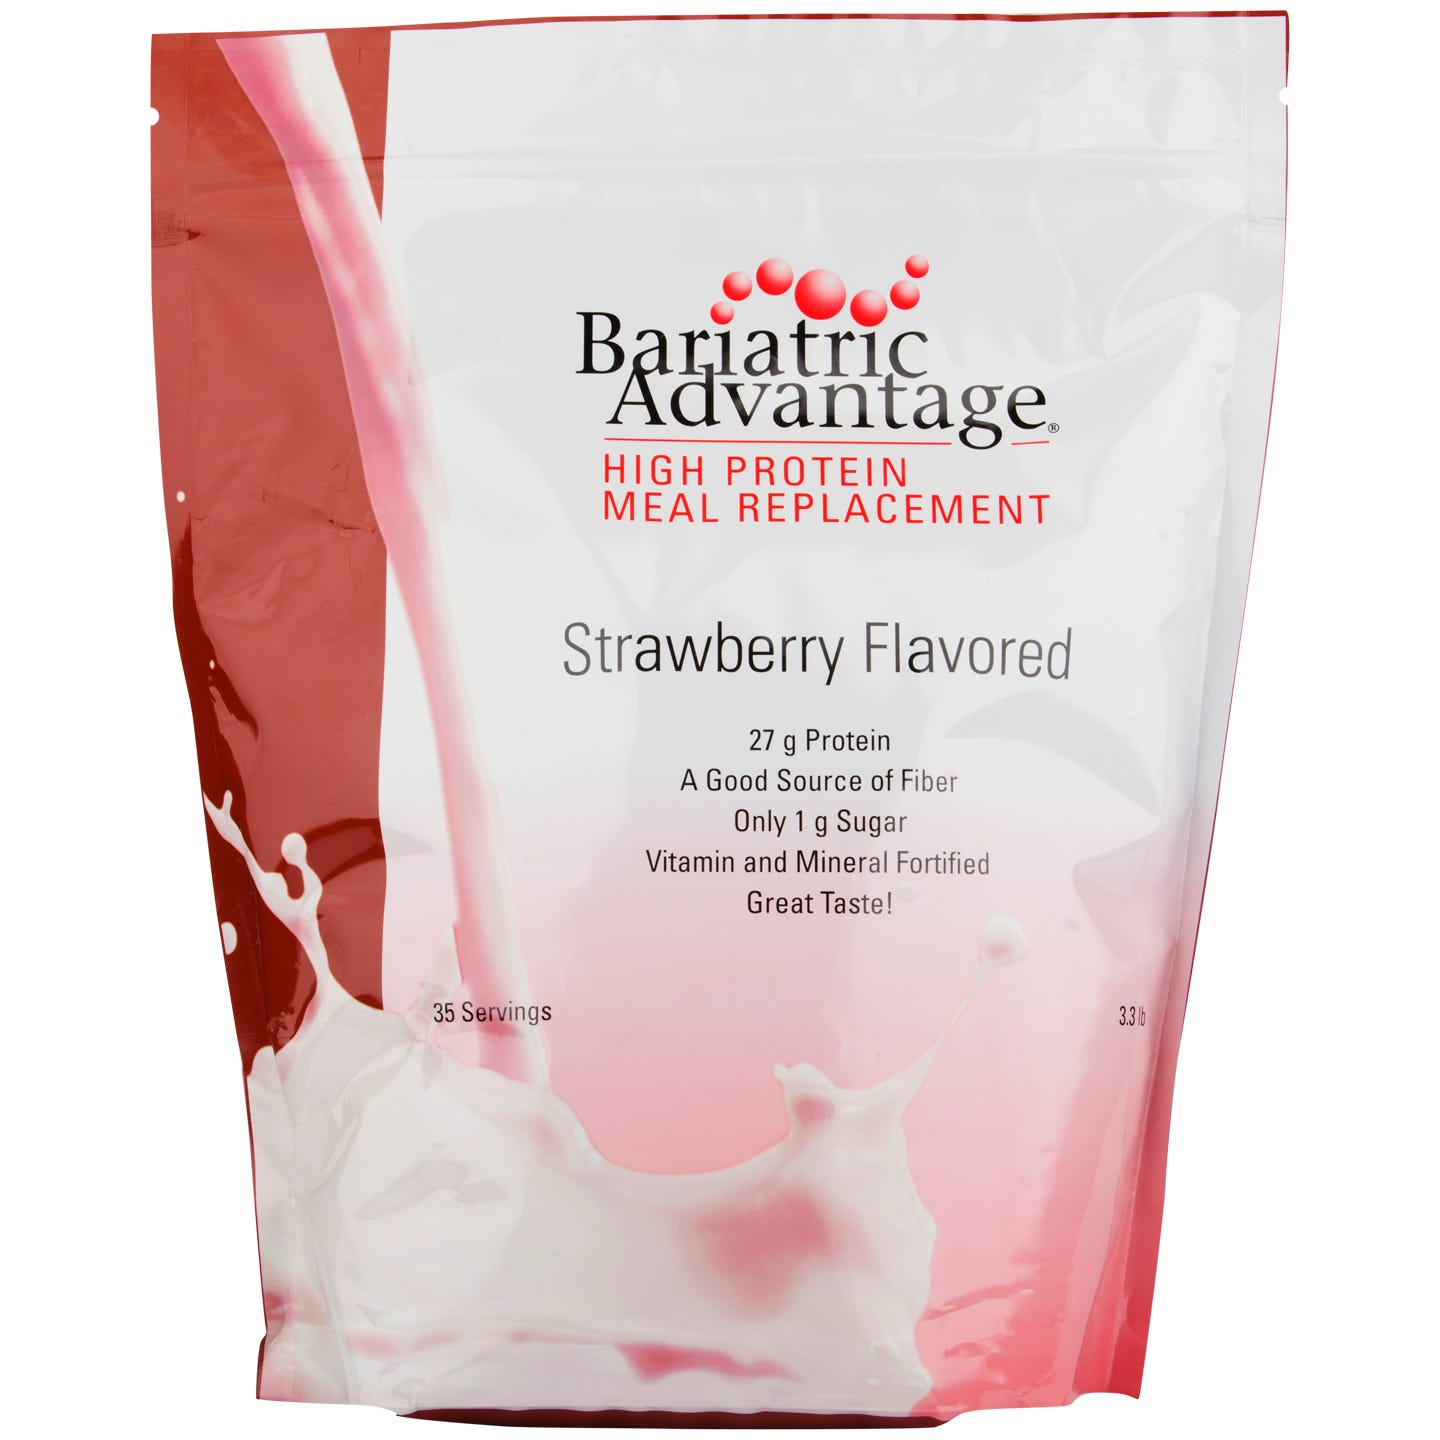 High Protein Meal Replacement Shakes Strawberry 35 Servings - Bariatric Advantage - Rapid Diet Weight Loss Products Shop